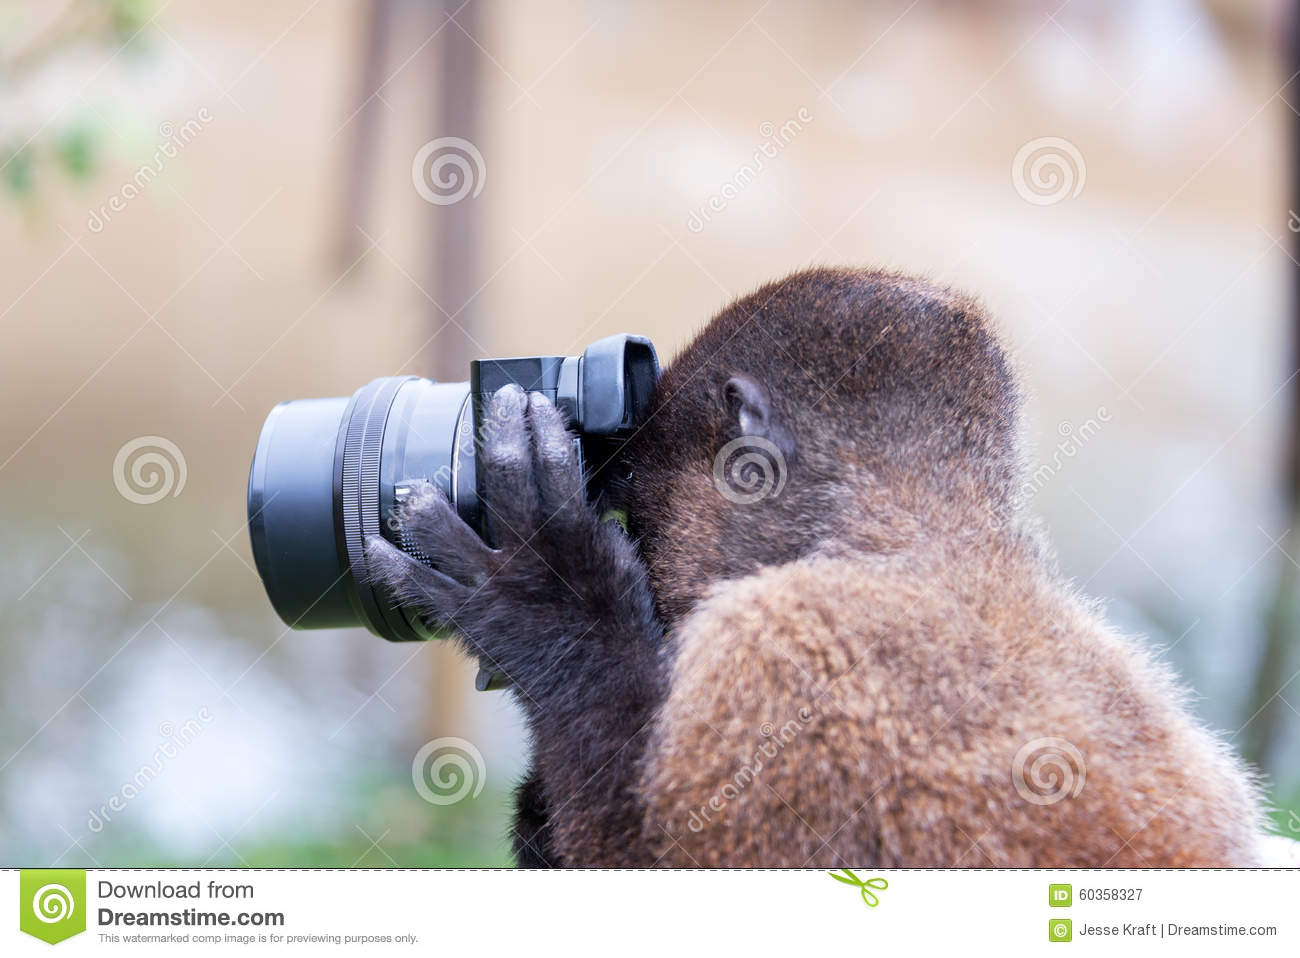 Monkey Taking A Picture Stock Photo Image 60358327